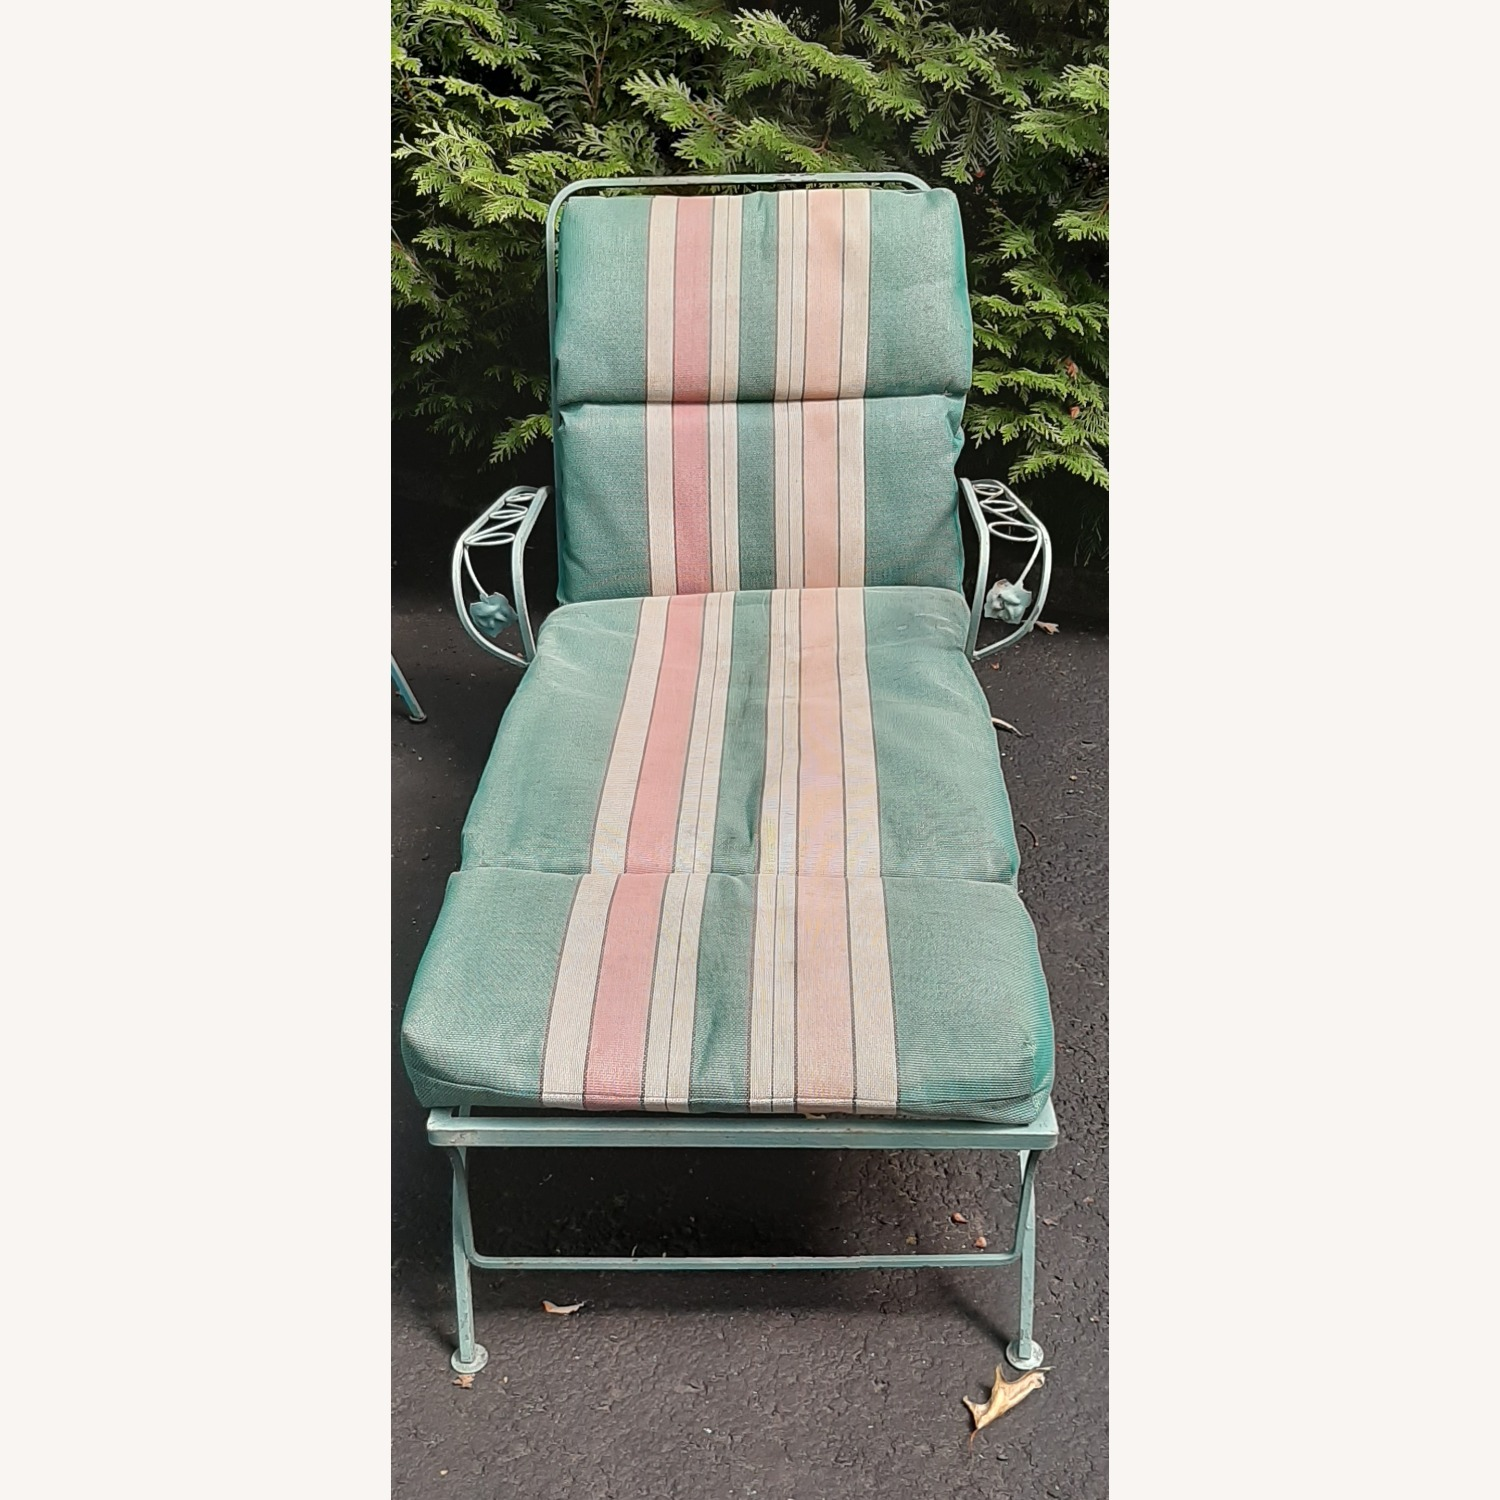 Woodard Patio Chaise Lounge - image-2